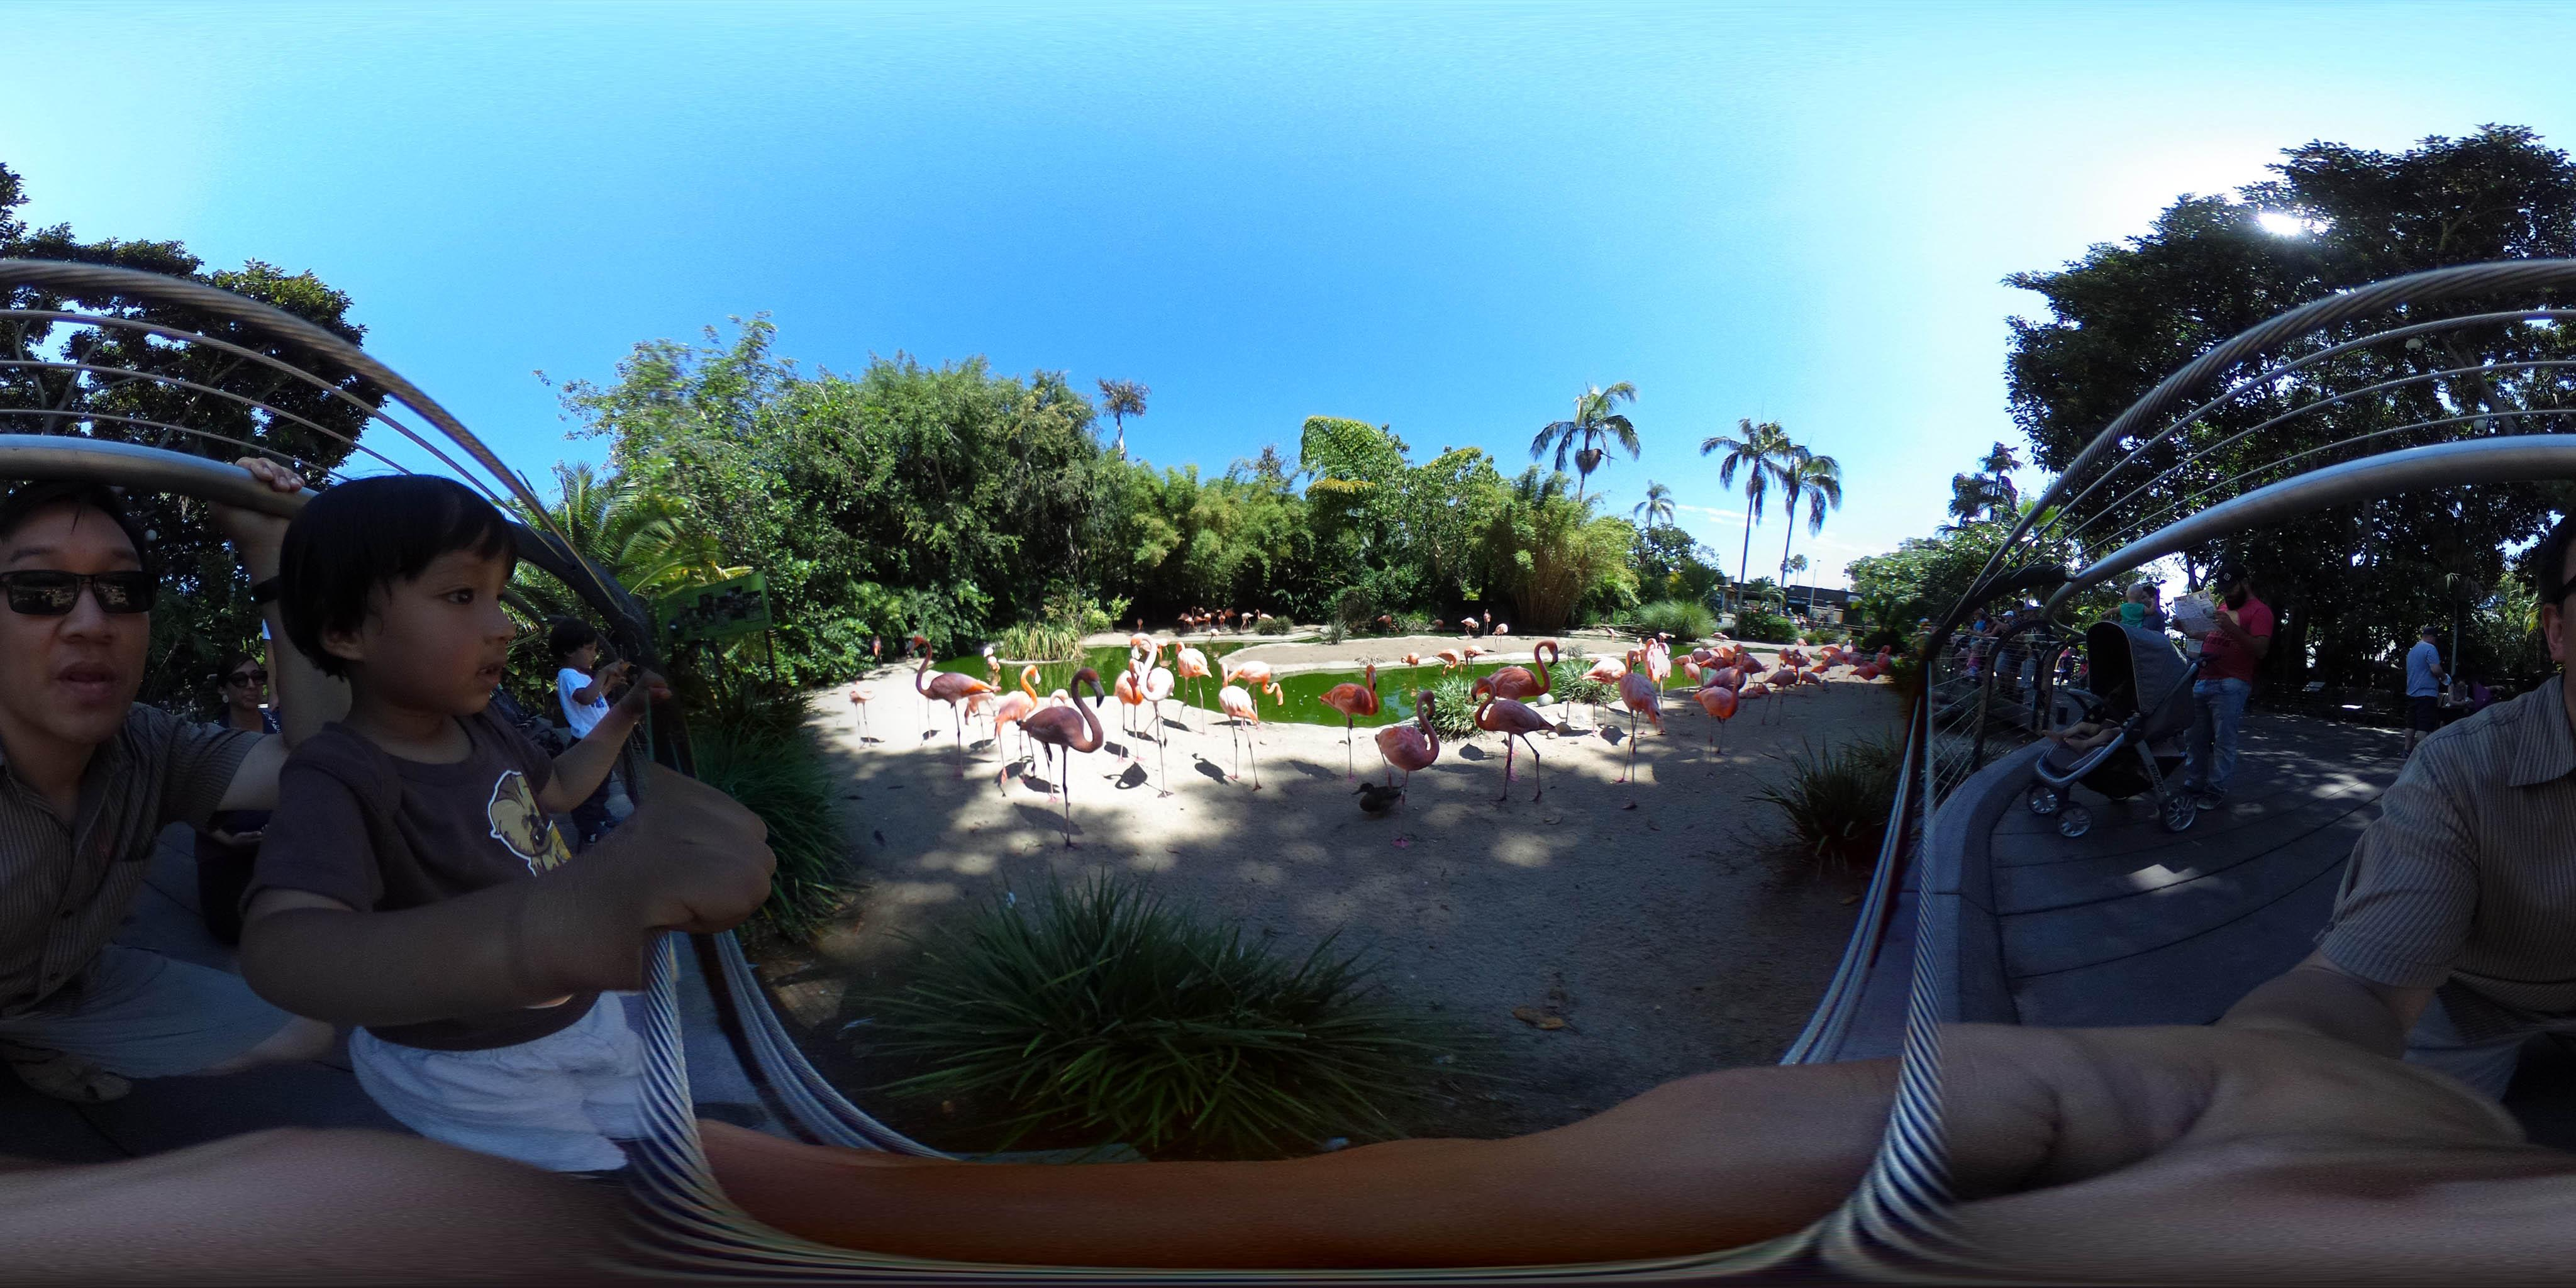 How to email a 360 photo to anyone - The Momento360 Blog